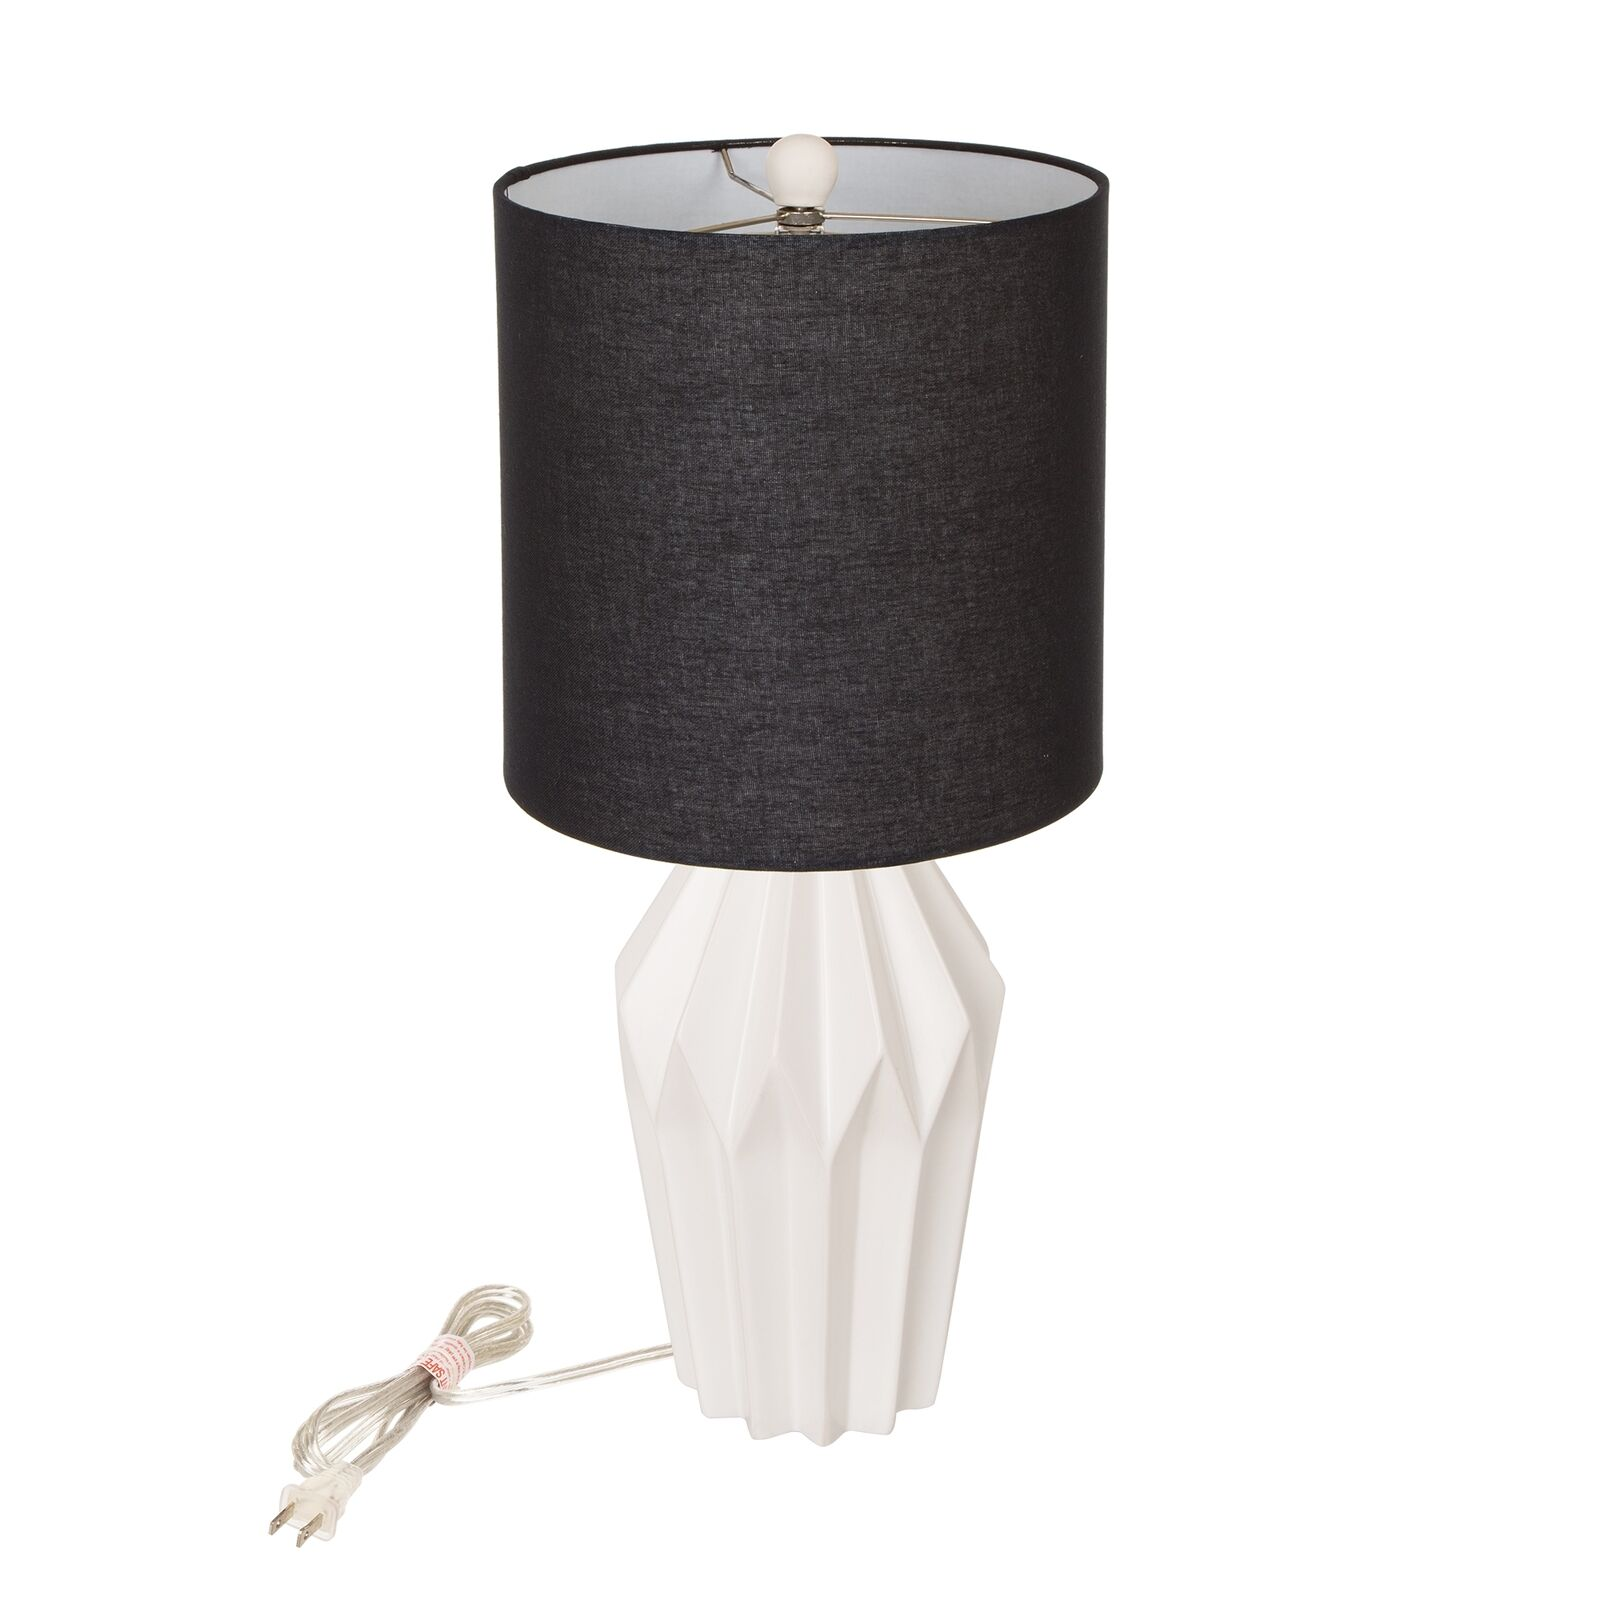 Details about Glitzhome Modern Ceramic Table Lamp Aesthetic Bedroom Accent  Light Living Room